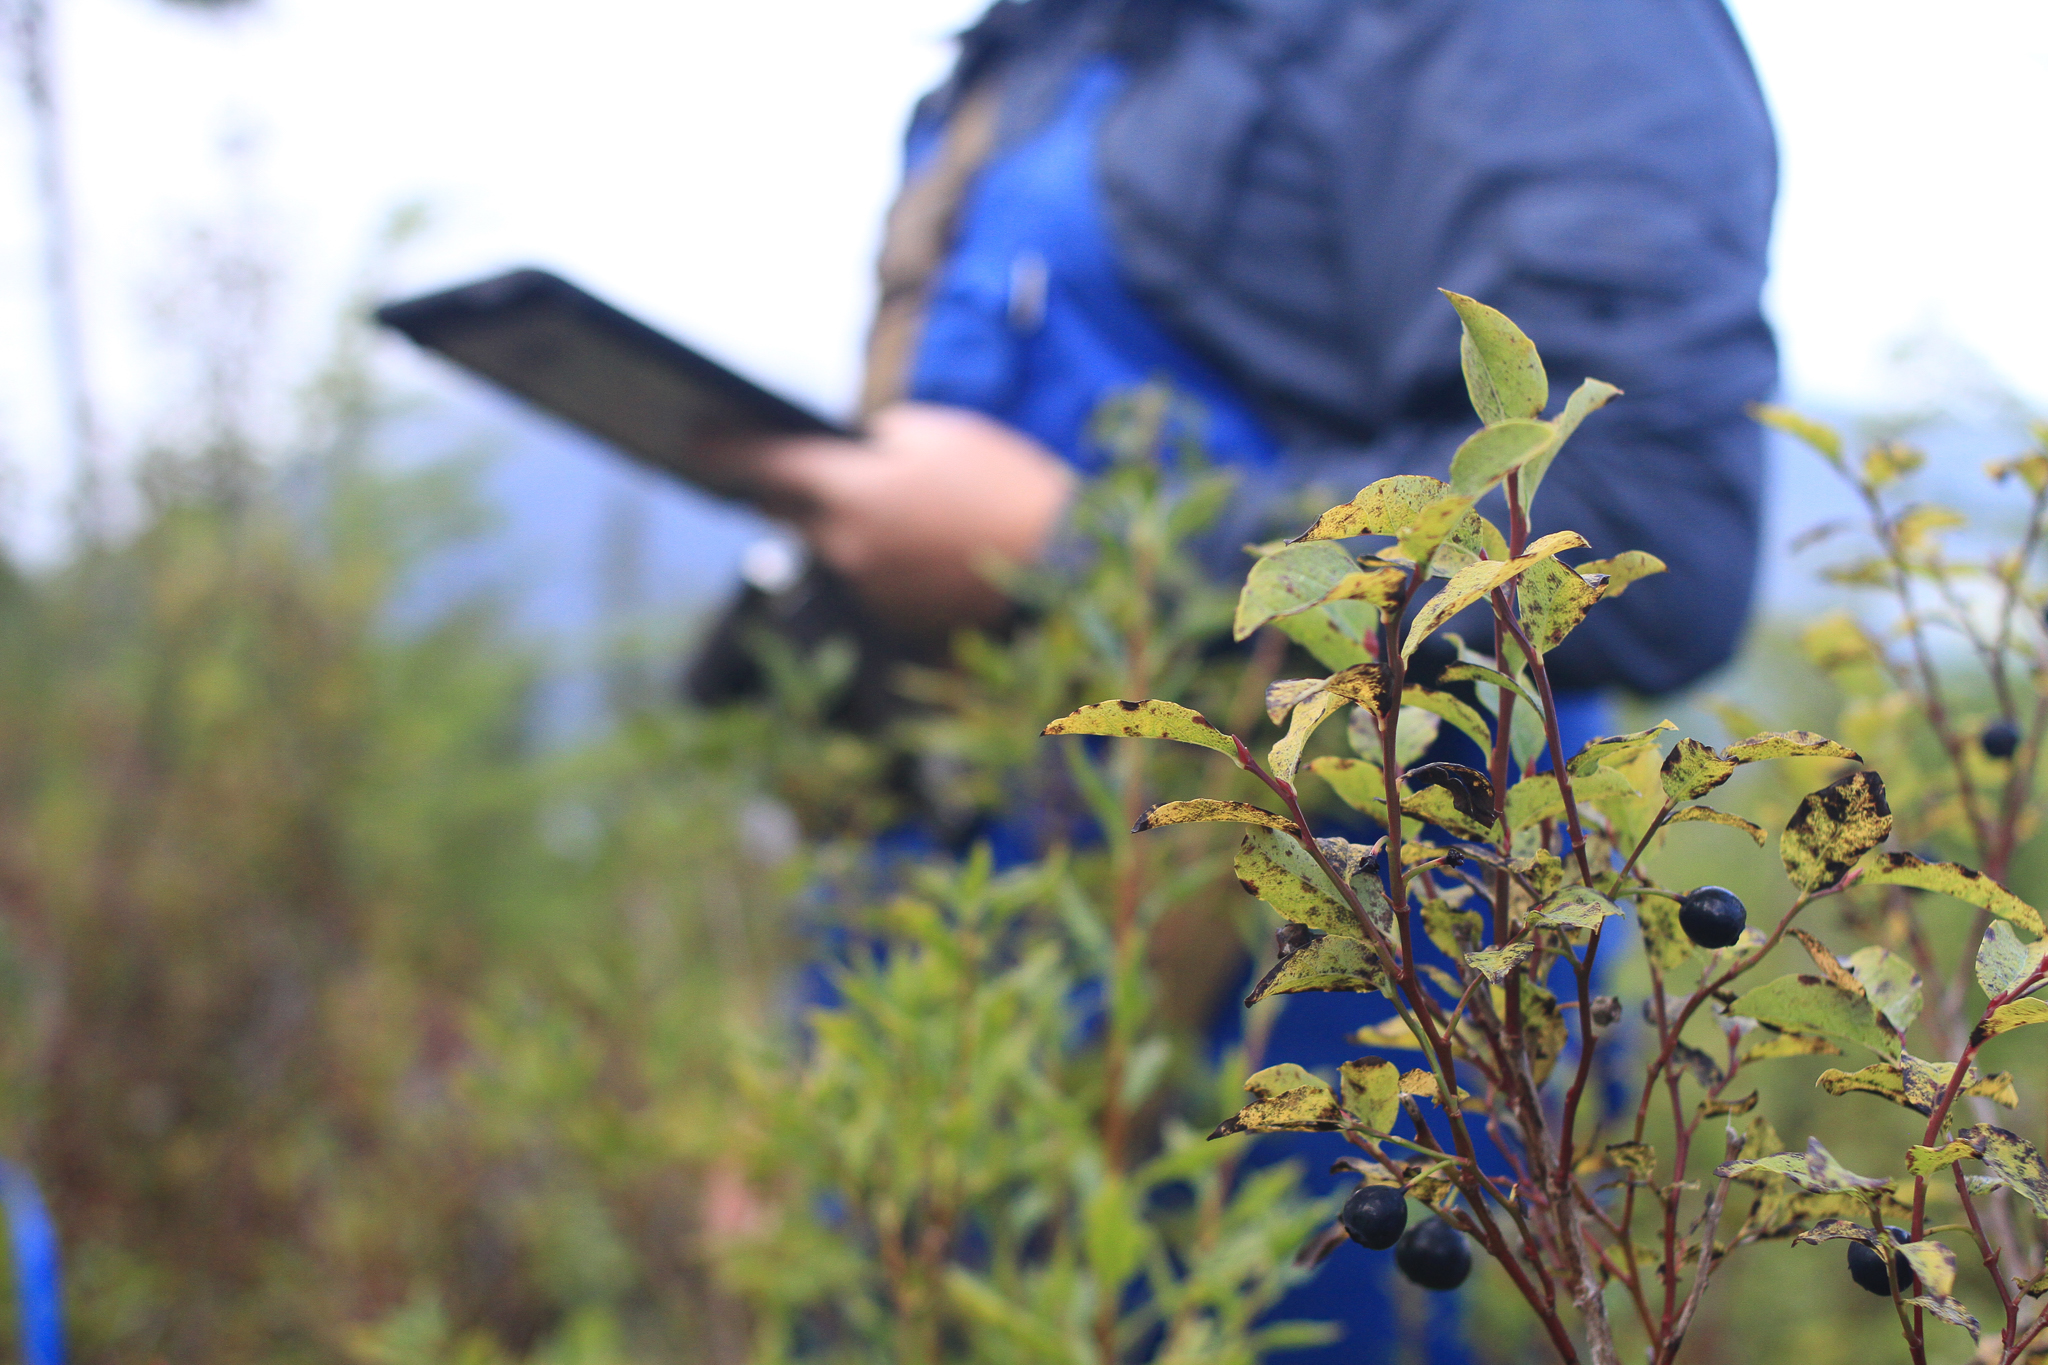 Blueberry bushes grow at the site of an old clearcut on Southeast Alaska's Chichagof Island. Bob Christensen, an ecologist, takes notes in the background as the crew he oversees surveys the types of plants growing back on the cut slope.